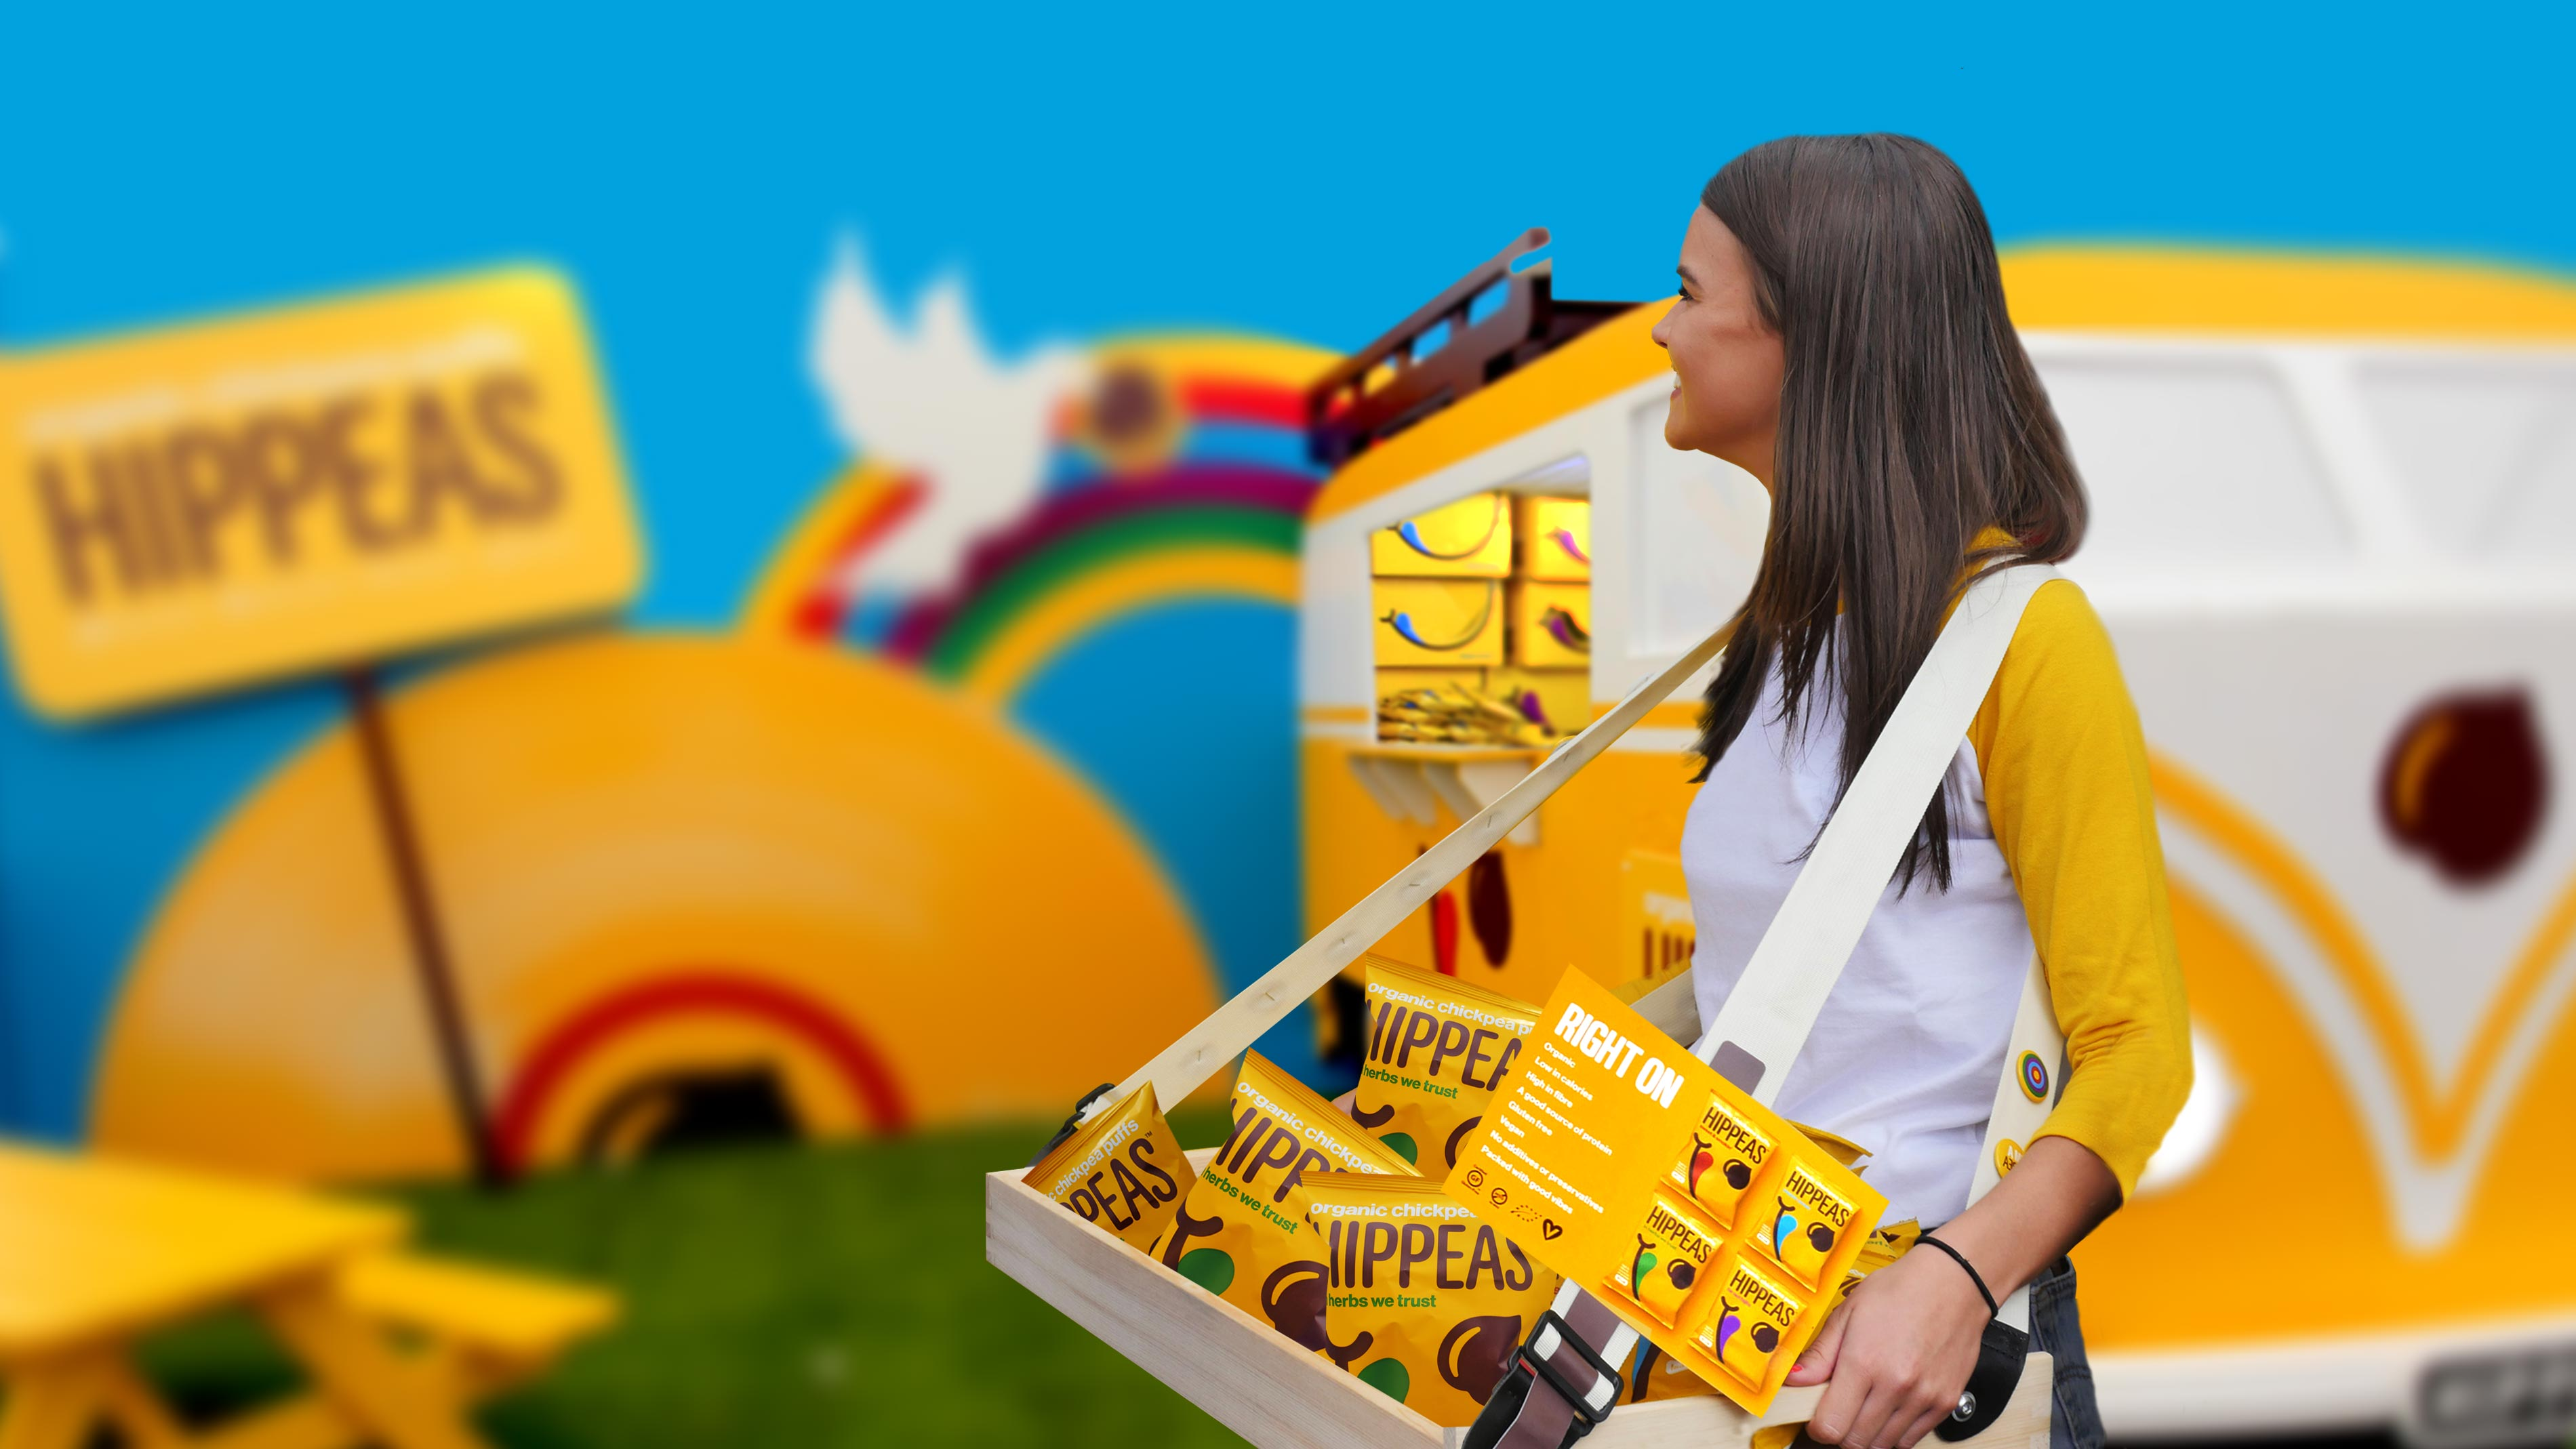 Experiential agency launches healthy snack with 'groovy' camper vans and wall graphics that appeal to the imagination